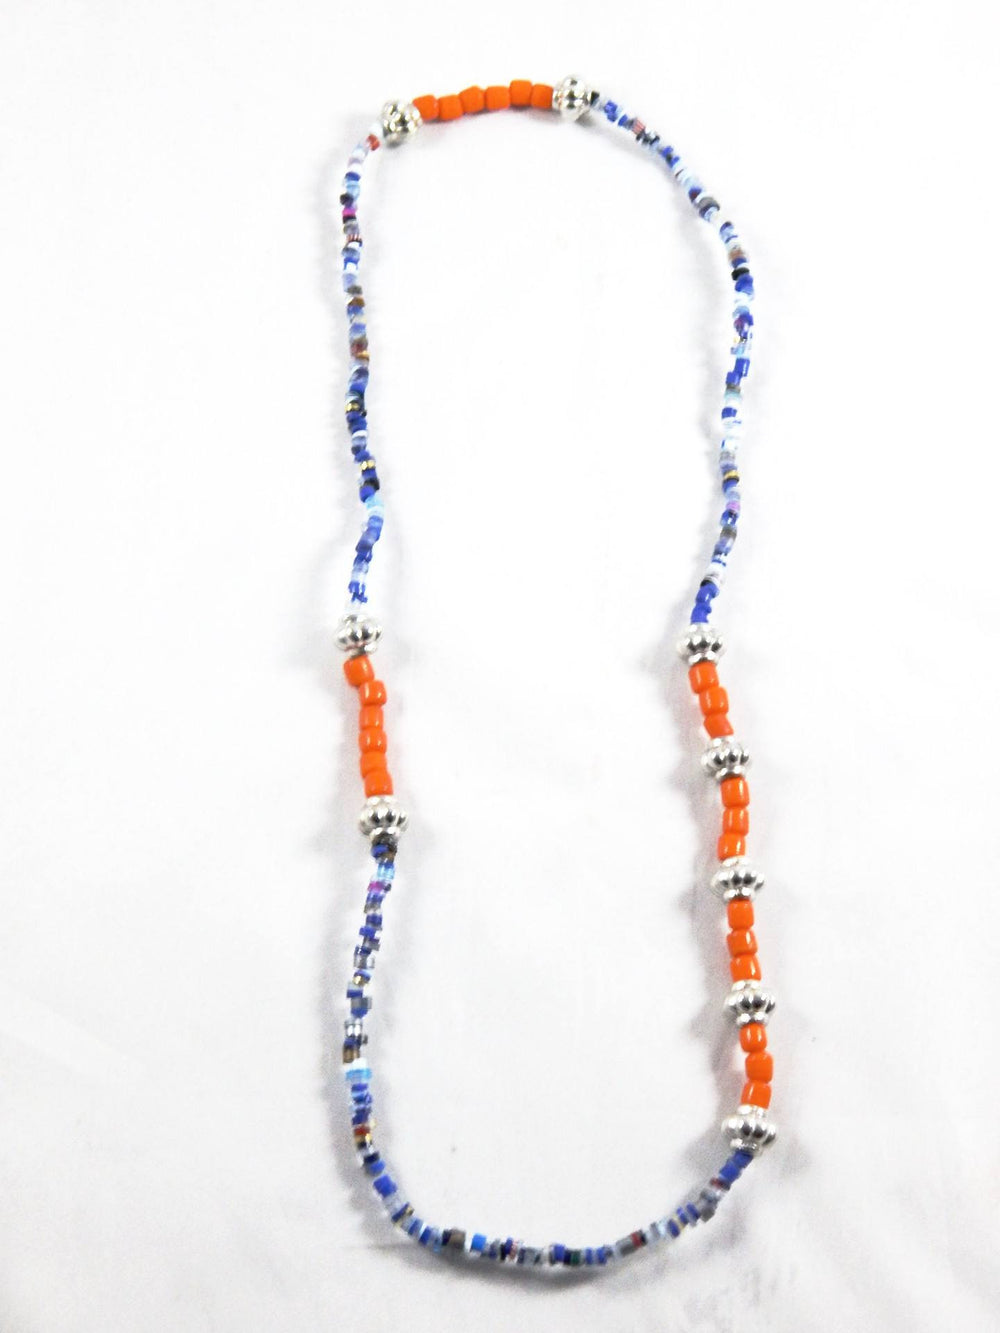 Upcycled series quillled recycled II paper neckpiece a